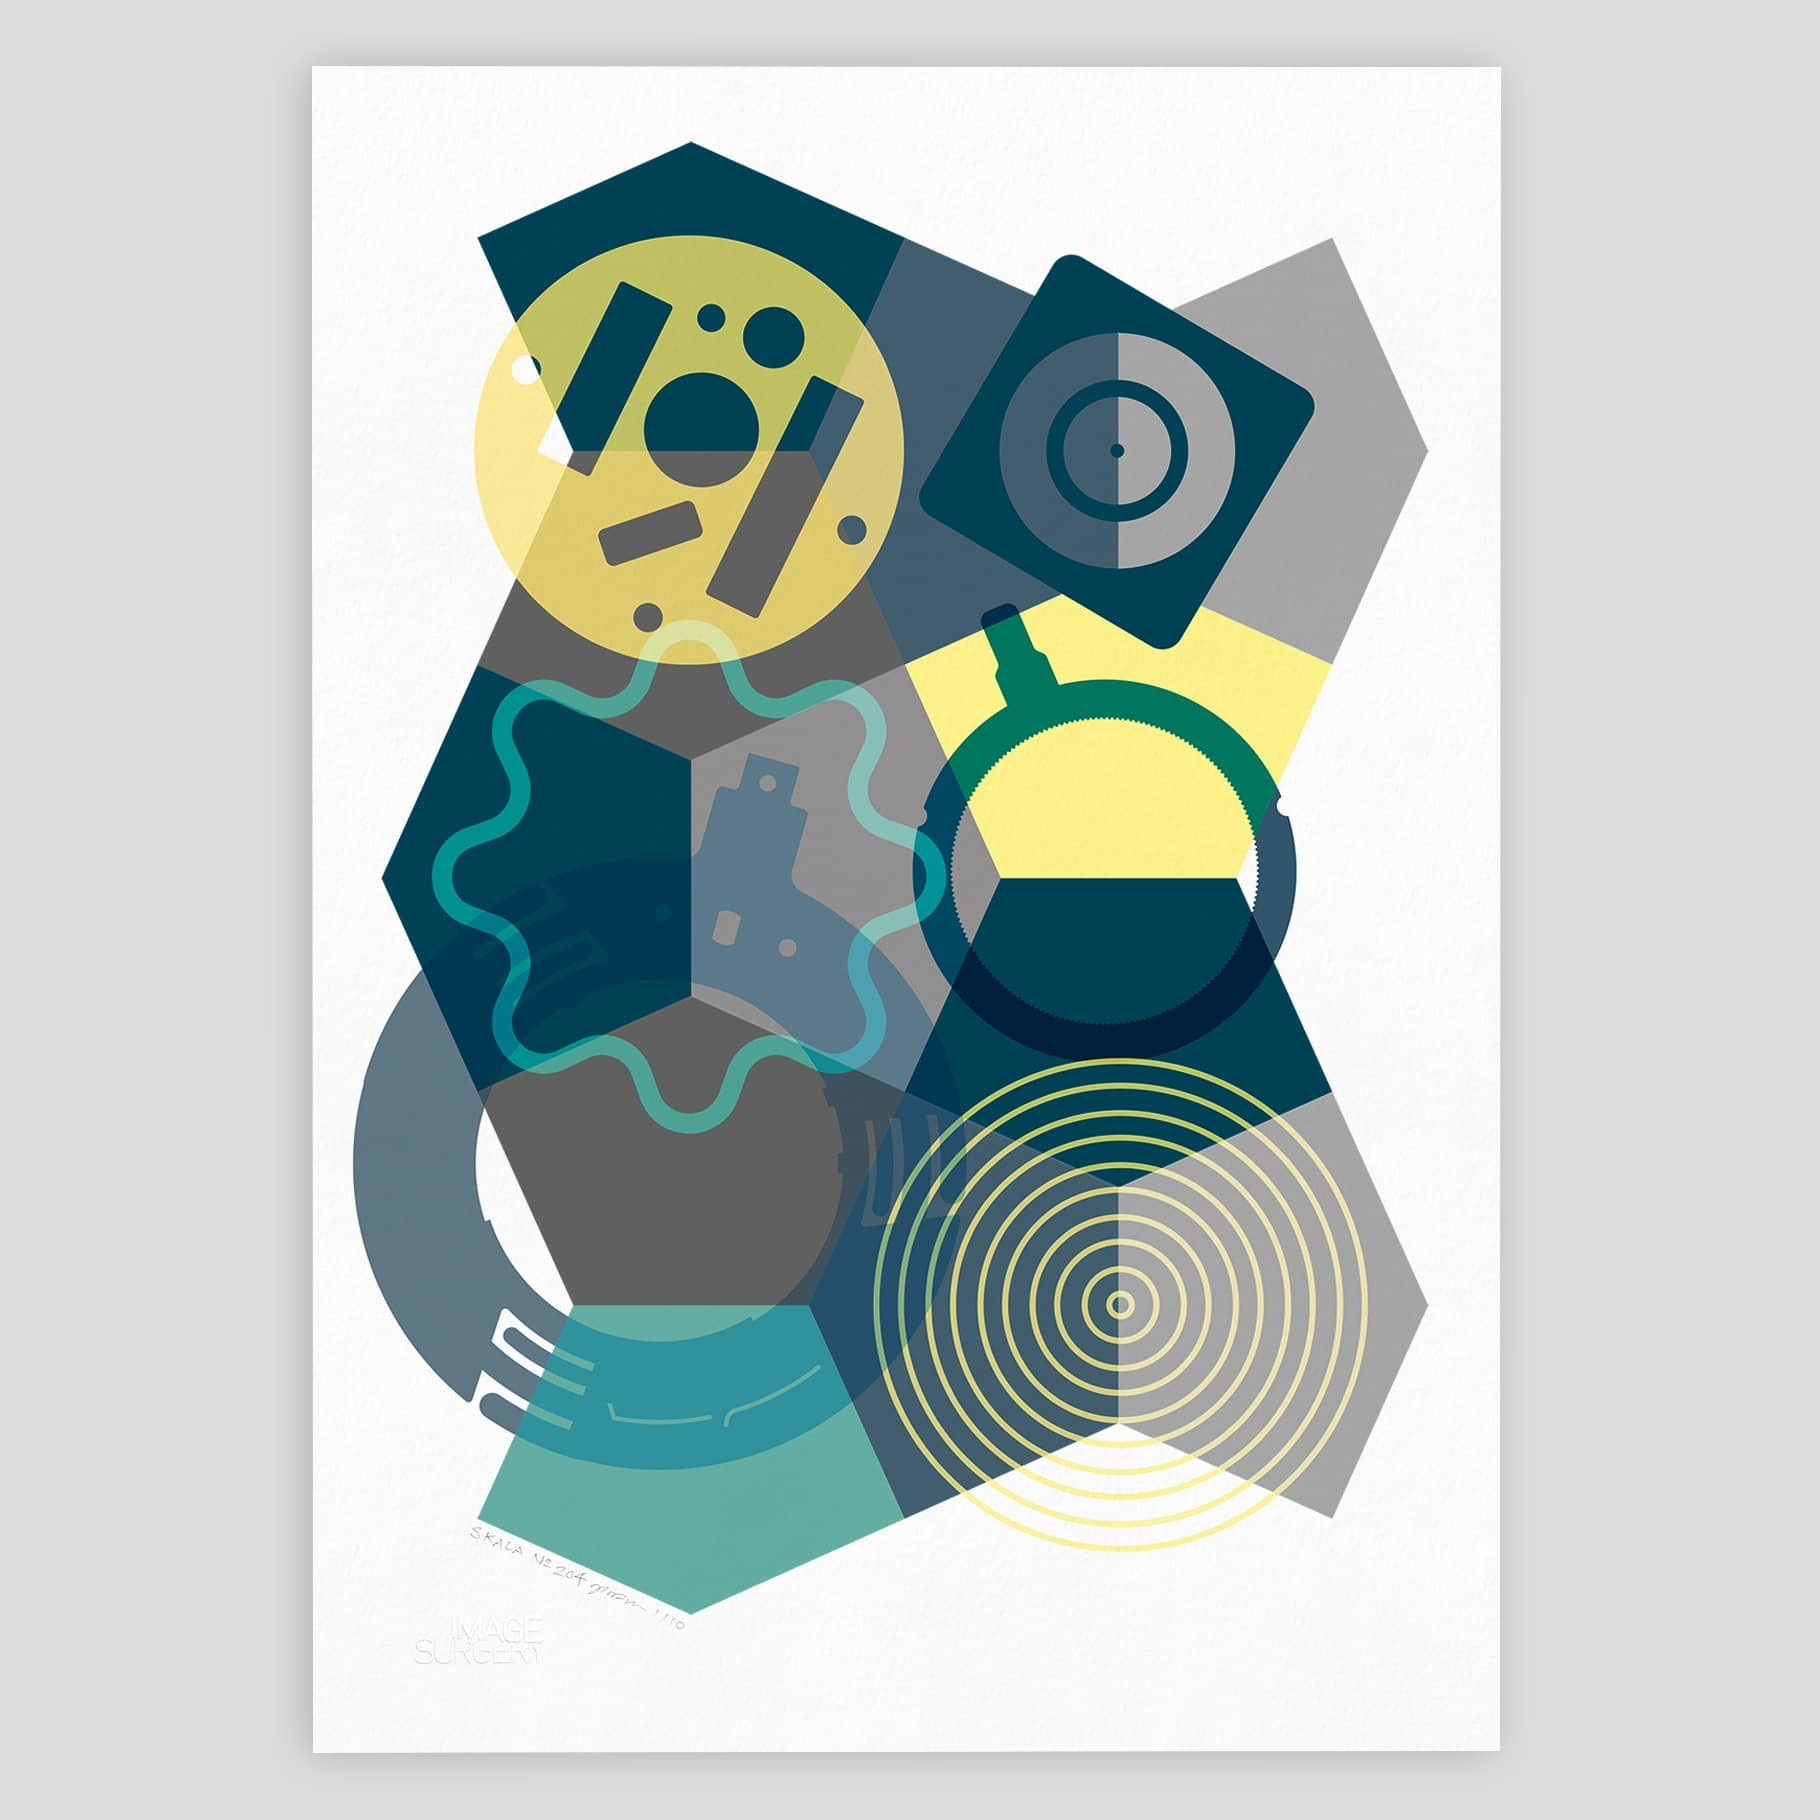 8a0288f614e Dynamic abstract geometric graphic art print for contemporary interior